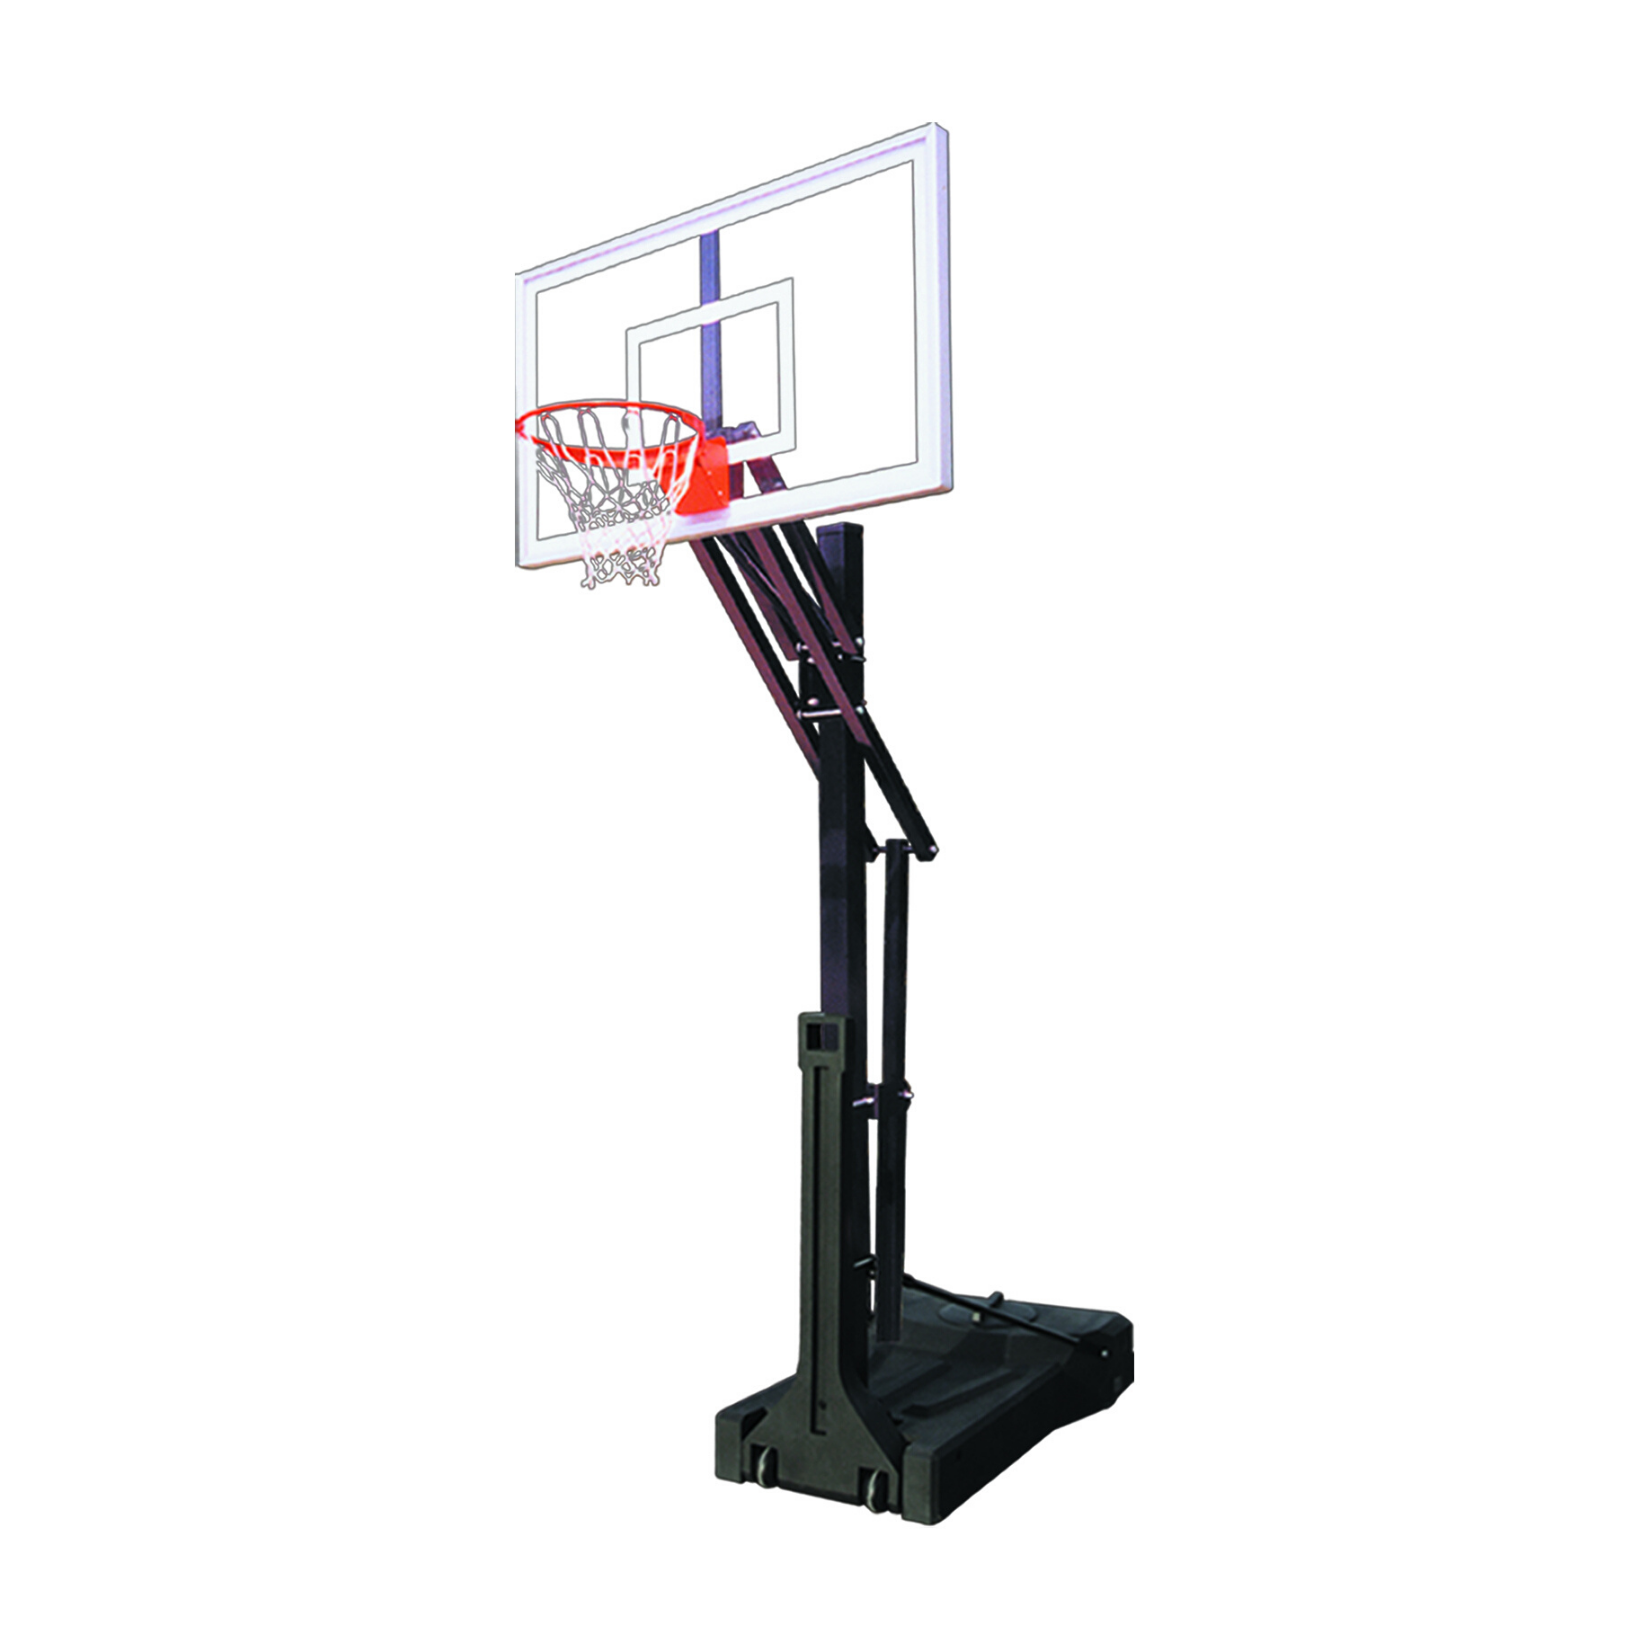 "First Team OmniSlam Turbo Portable Adjustable Basketball Hoop 36""x54"""